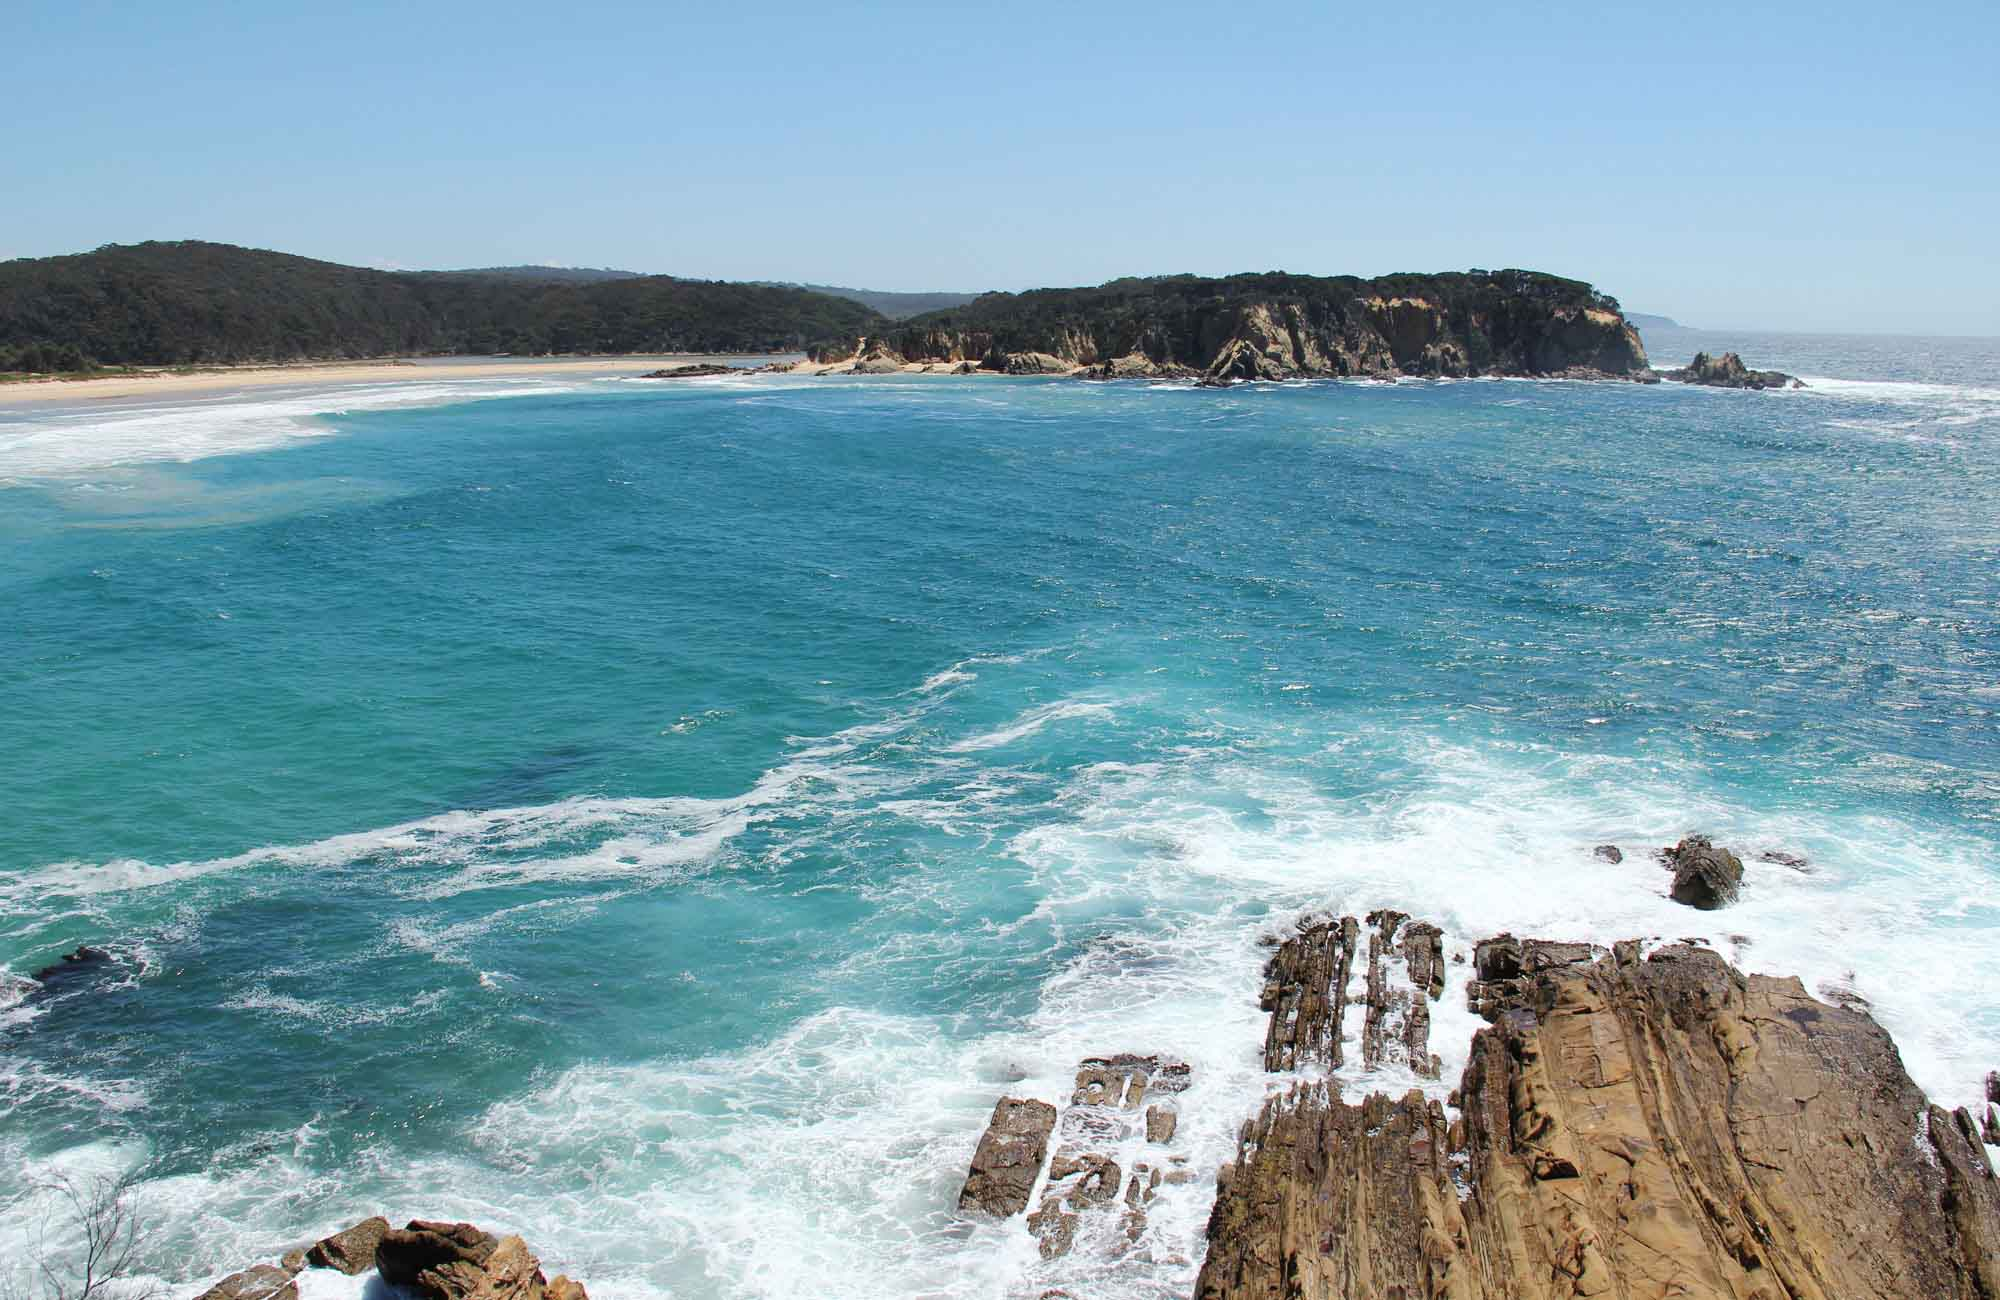 Wajurda Point beach view. Photo: John Yurasek